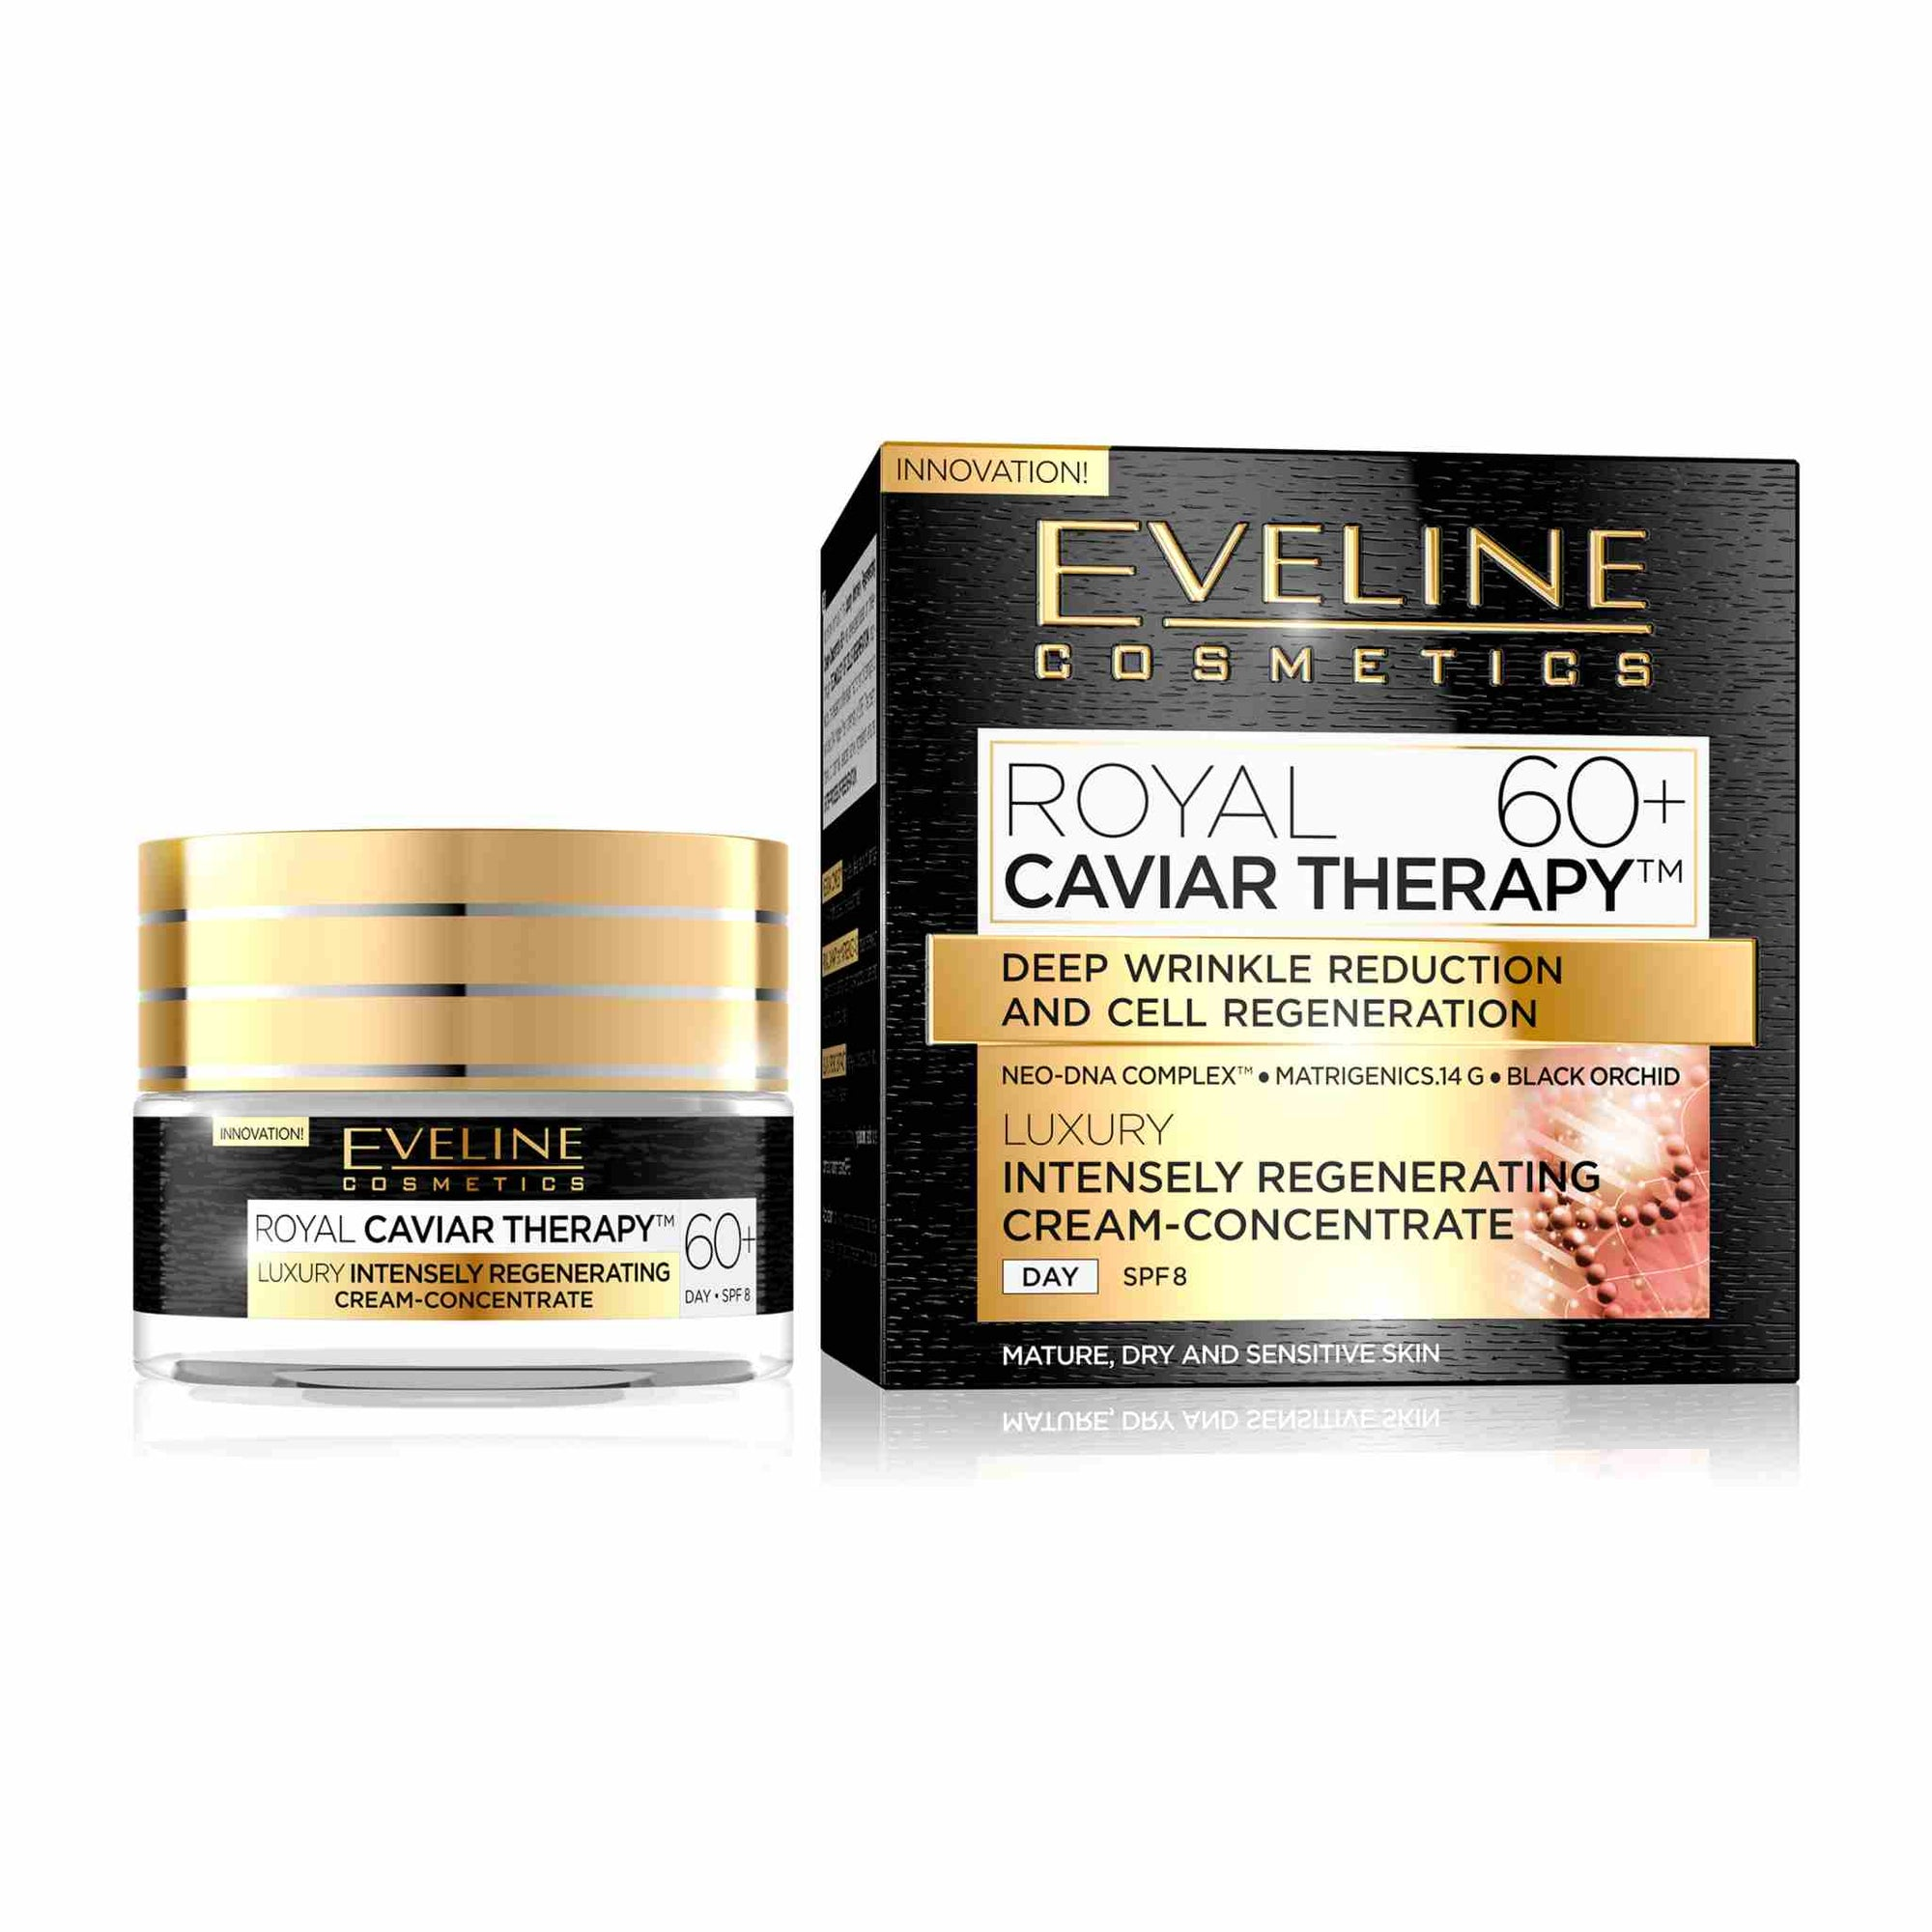 Royal Caviar Therapy Luxury Intesnsely Regenerating Day Cream 60+